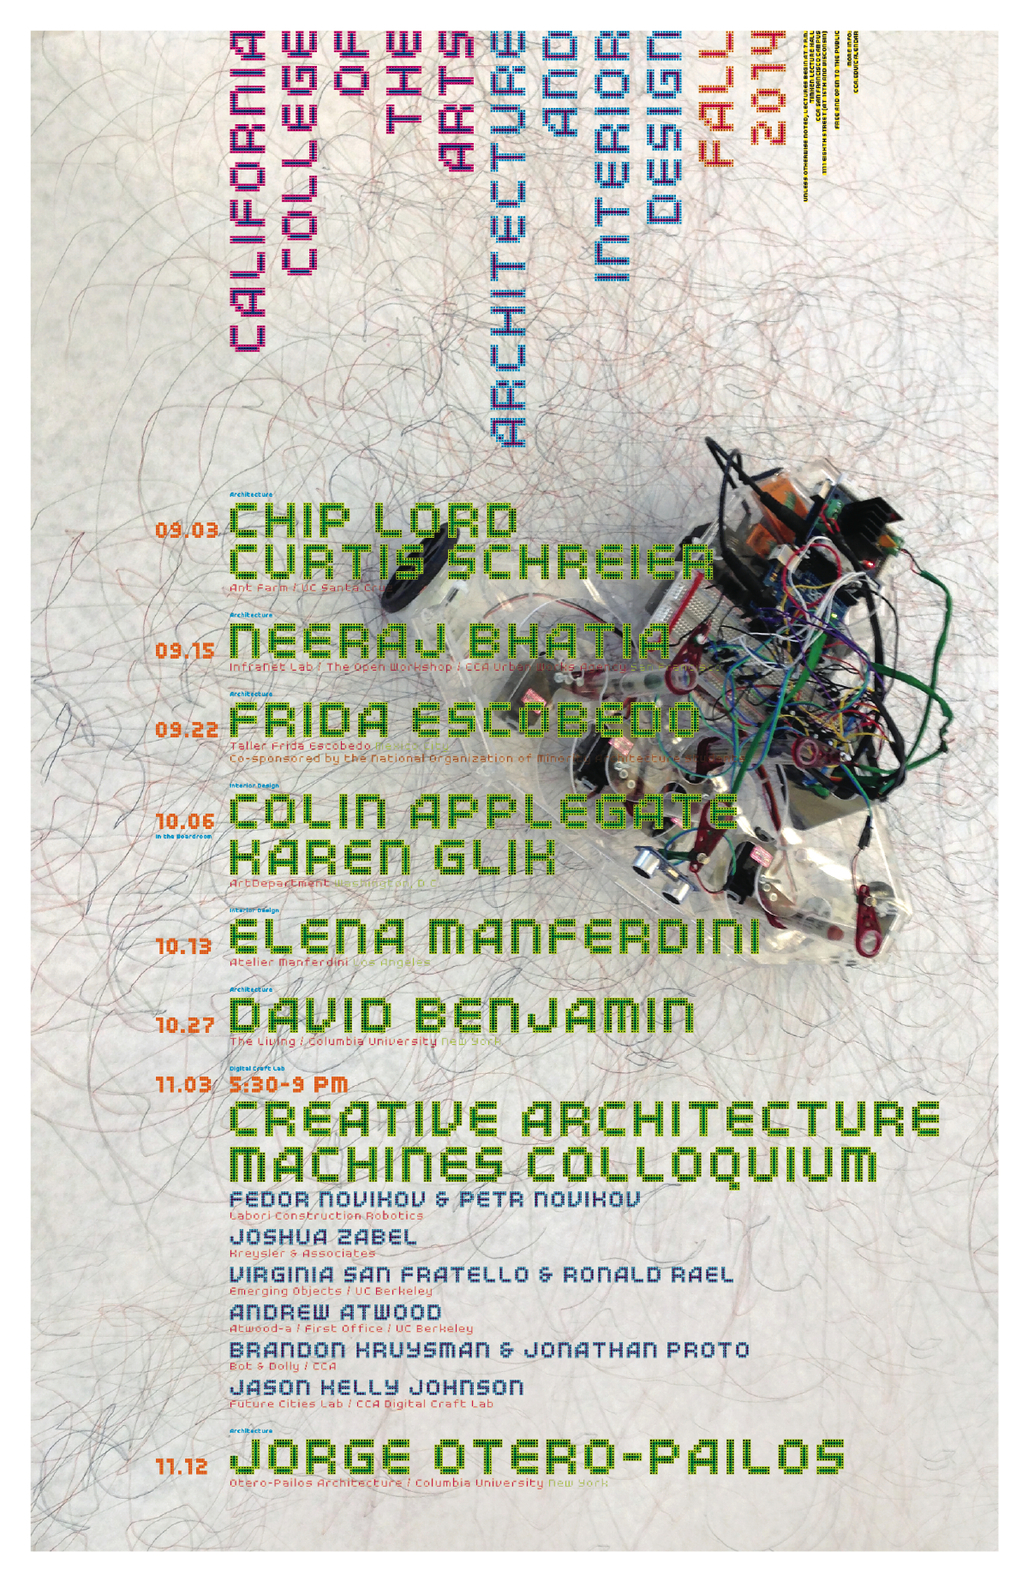 Poster design: Bob Aufuldish, Aufuldish & Warinner | Imagery: CCA student project by Robles & Henshaw-Plath (Creative Architecture Machines studio 2014 taught by Johnson & Shiloh). Courtesy of CCA.